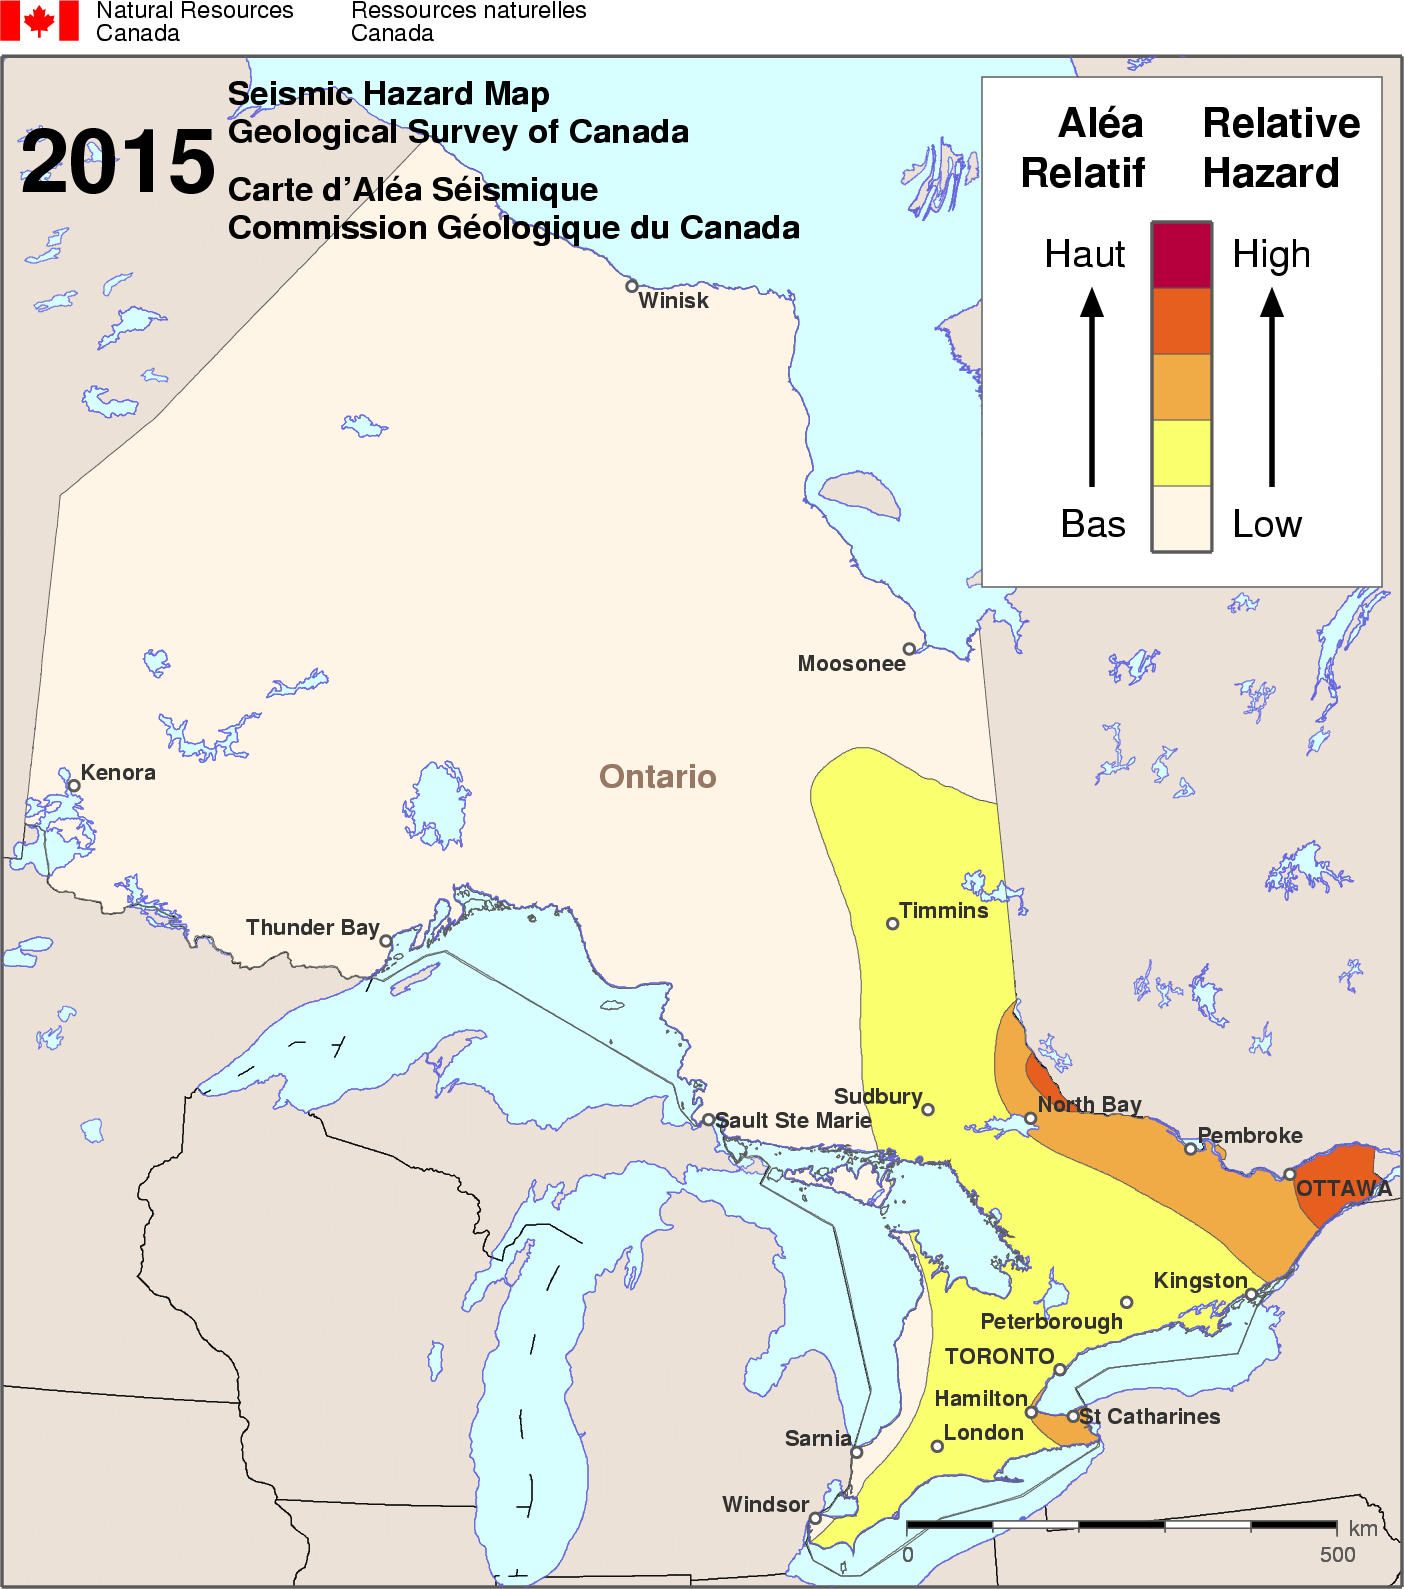 2015 NBCC seismic hazard map - ON